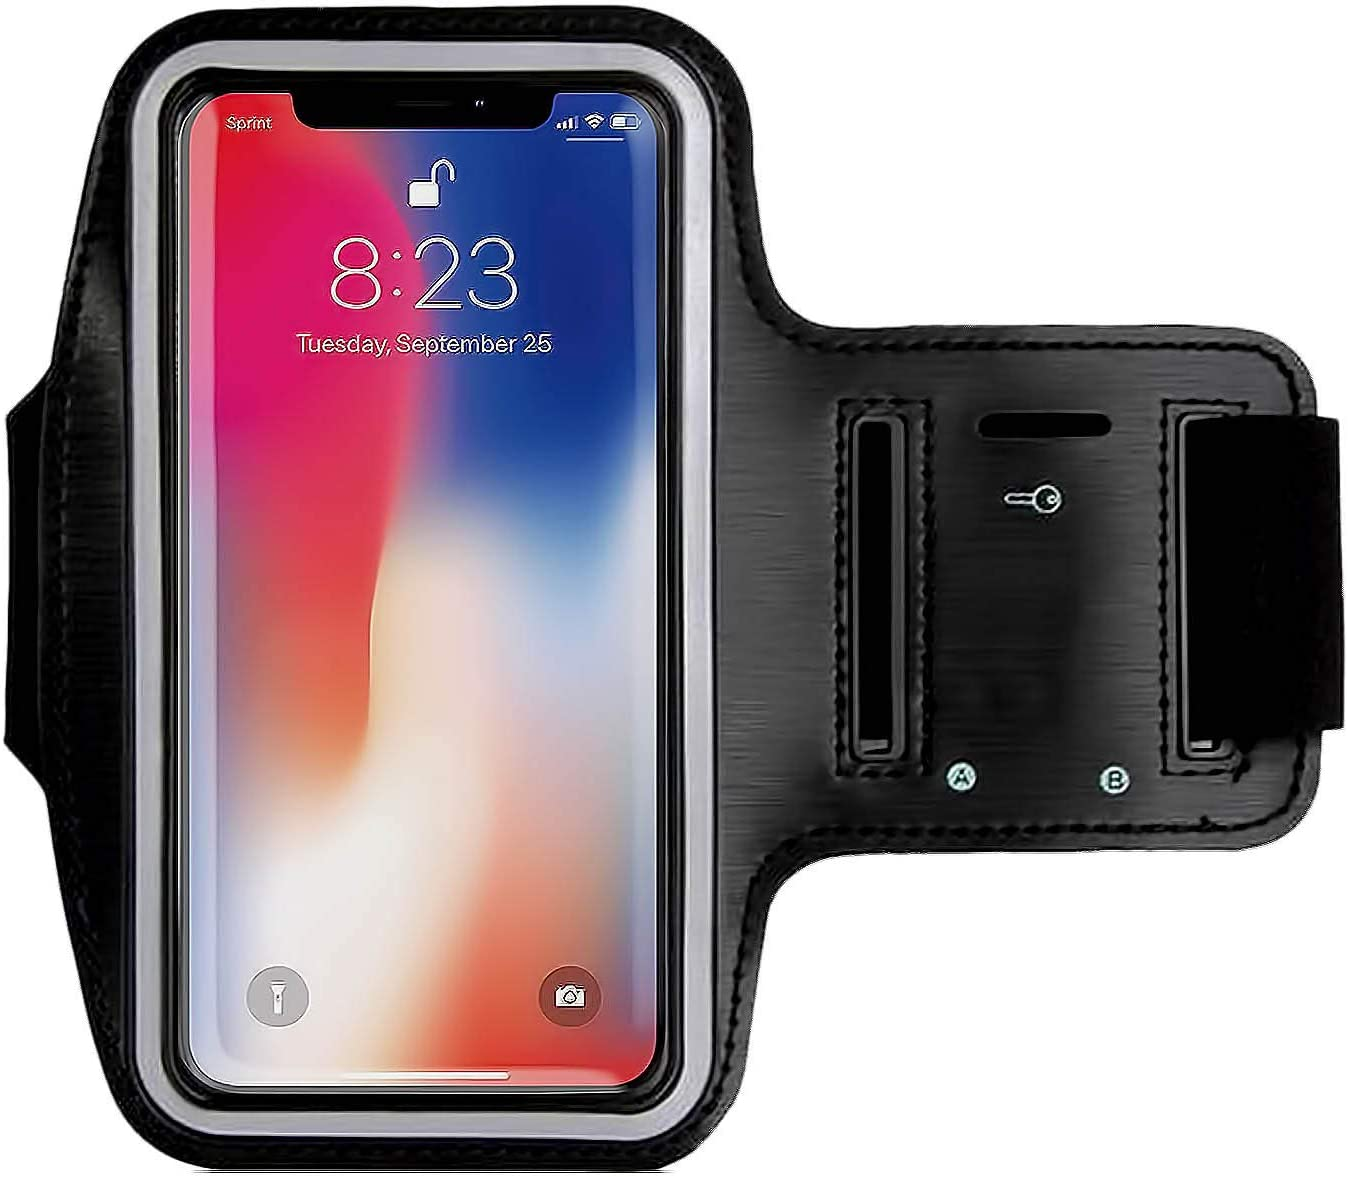 CaseHQ Water Resistant Cell Phone Armband Case Compatible Phone iPhone 11, 11 Pro, 11 Pro Max, X, Xs, Xs Max, Xr, 8, 7, 6, Plus Galaxy S10, S9, S8, S7, Plus Sizes and More. Adjustable Band & Key Slot